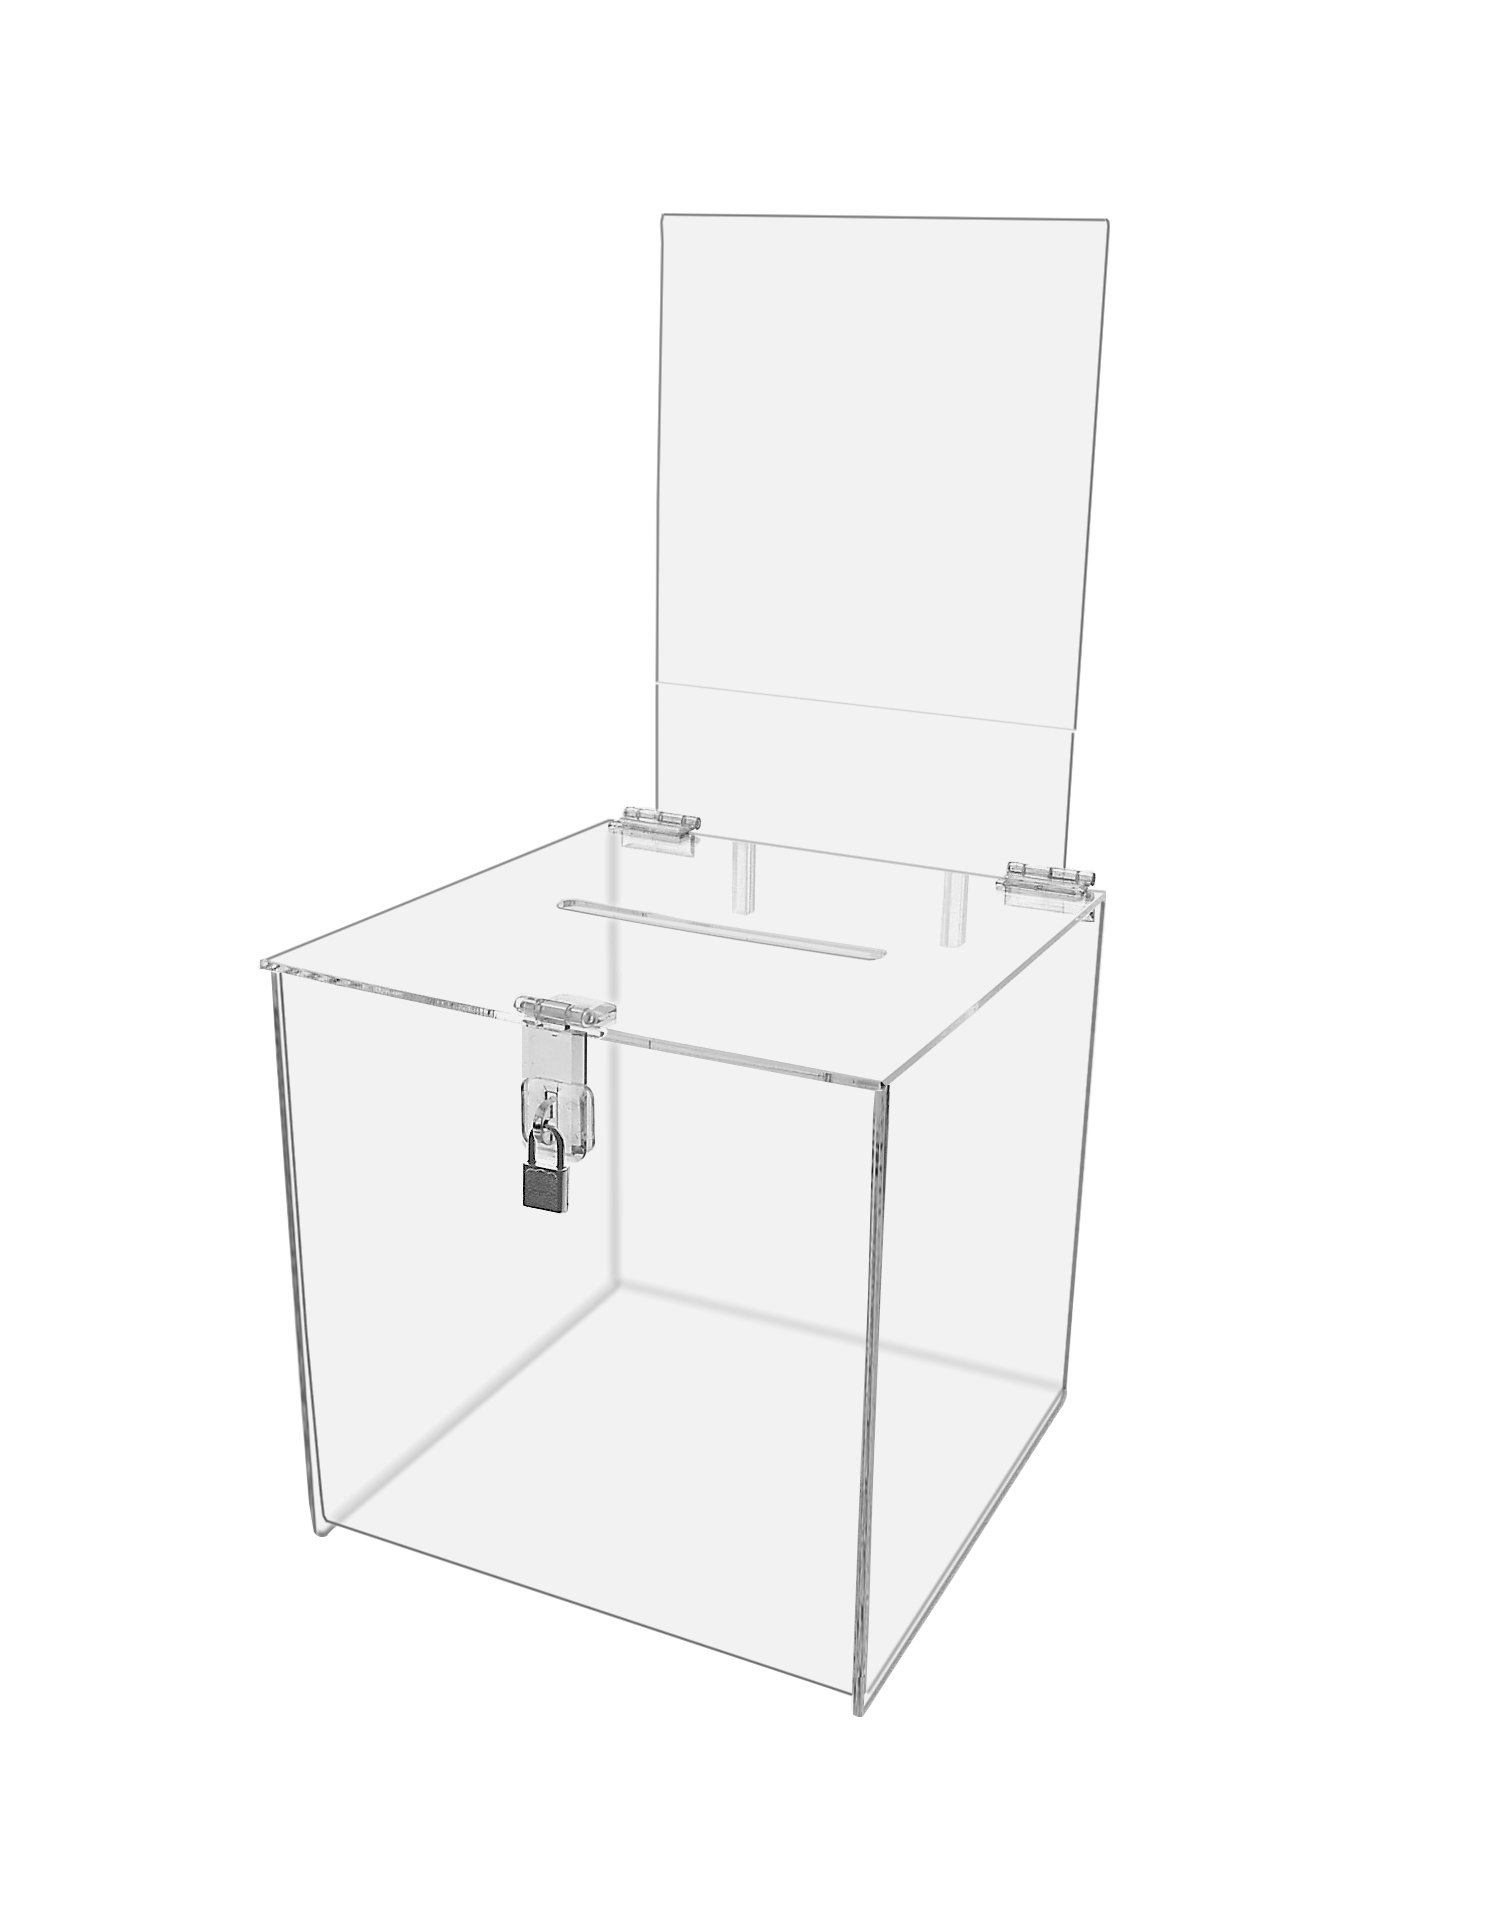 Marketing Holders Contest Cube Premium Plastic Locking Ballot Box With Sign Holder and Lock For Suggestions, Votes, and Donations 10'' x 10'' Pack of 2